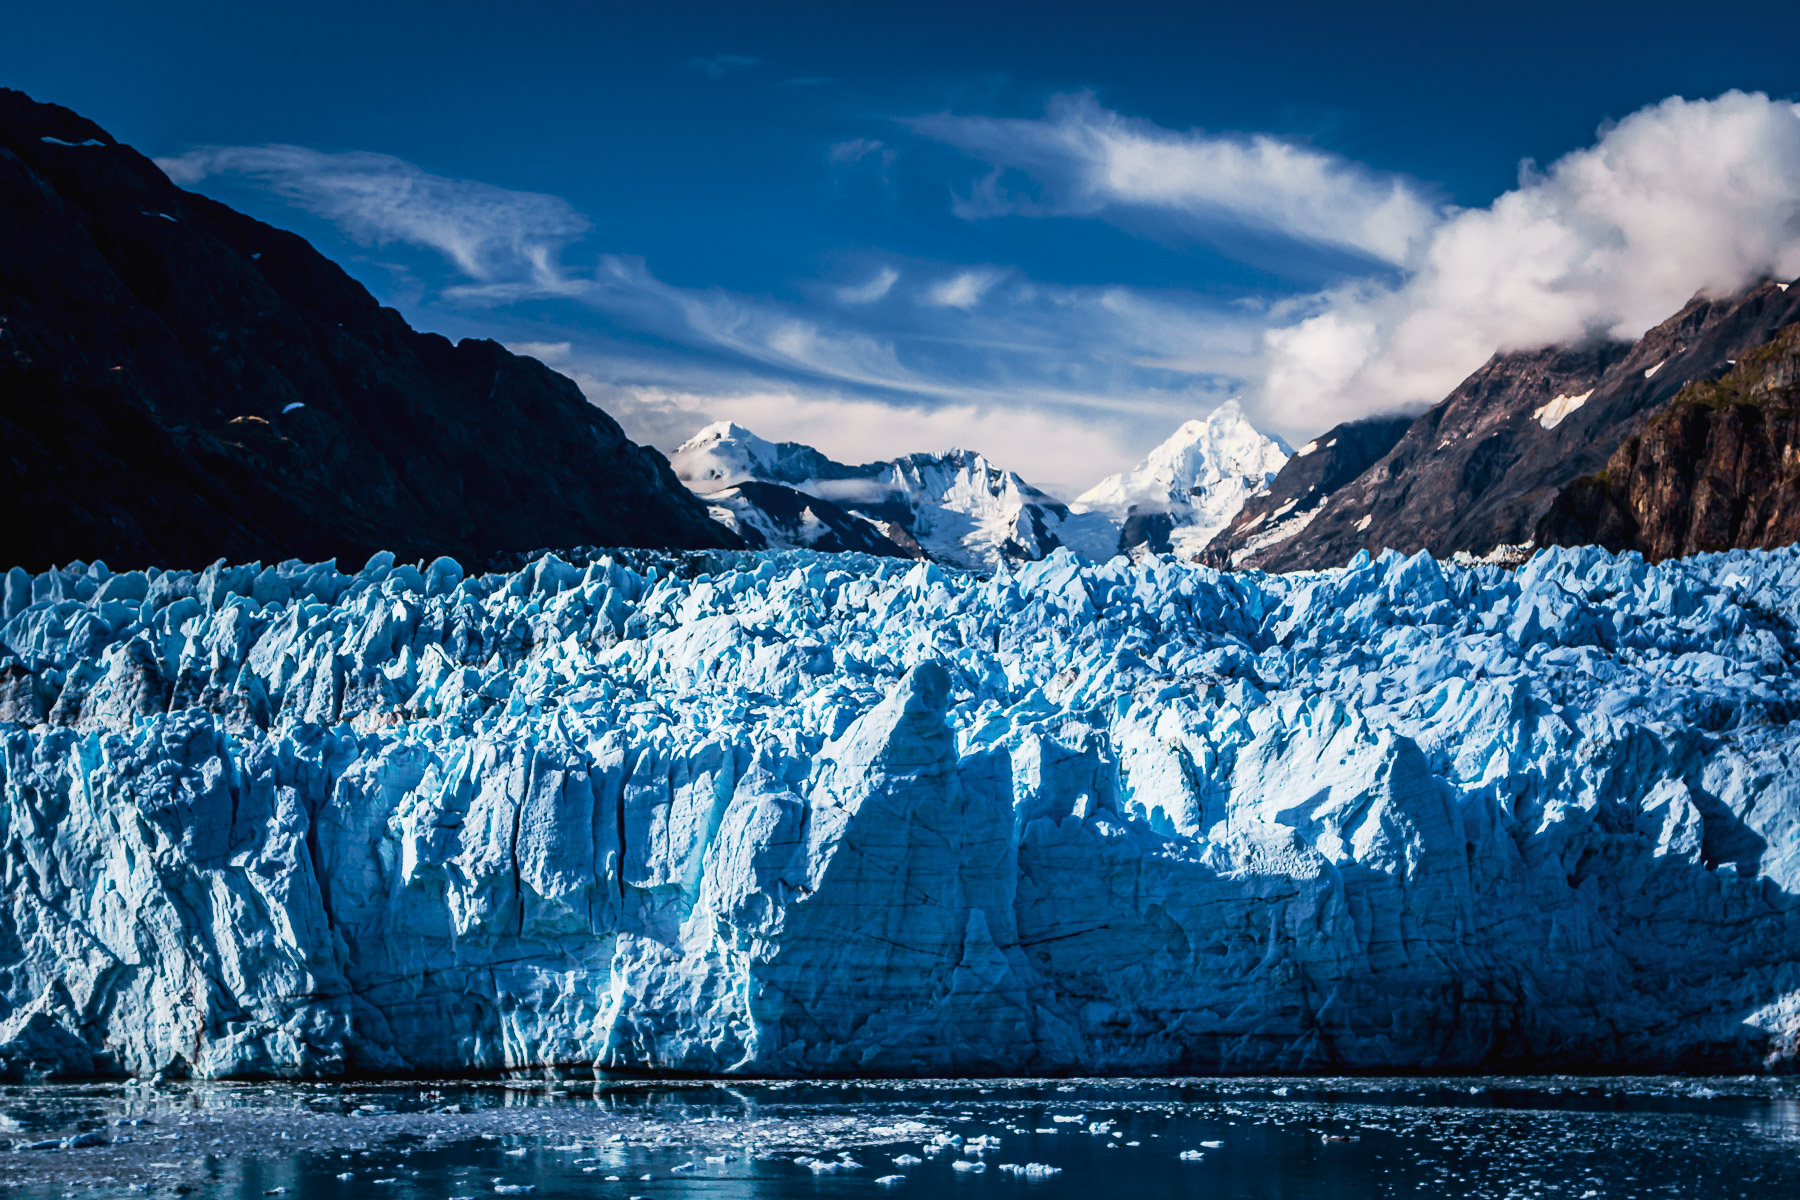 Alaska's Margerie Glacier rises from the icy waters of Glacier Bay.